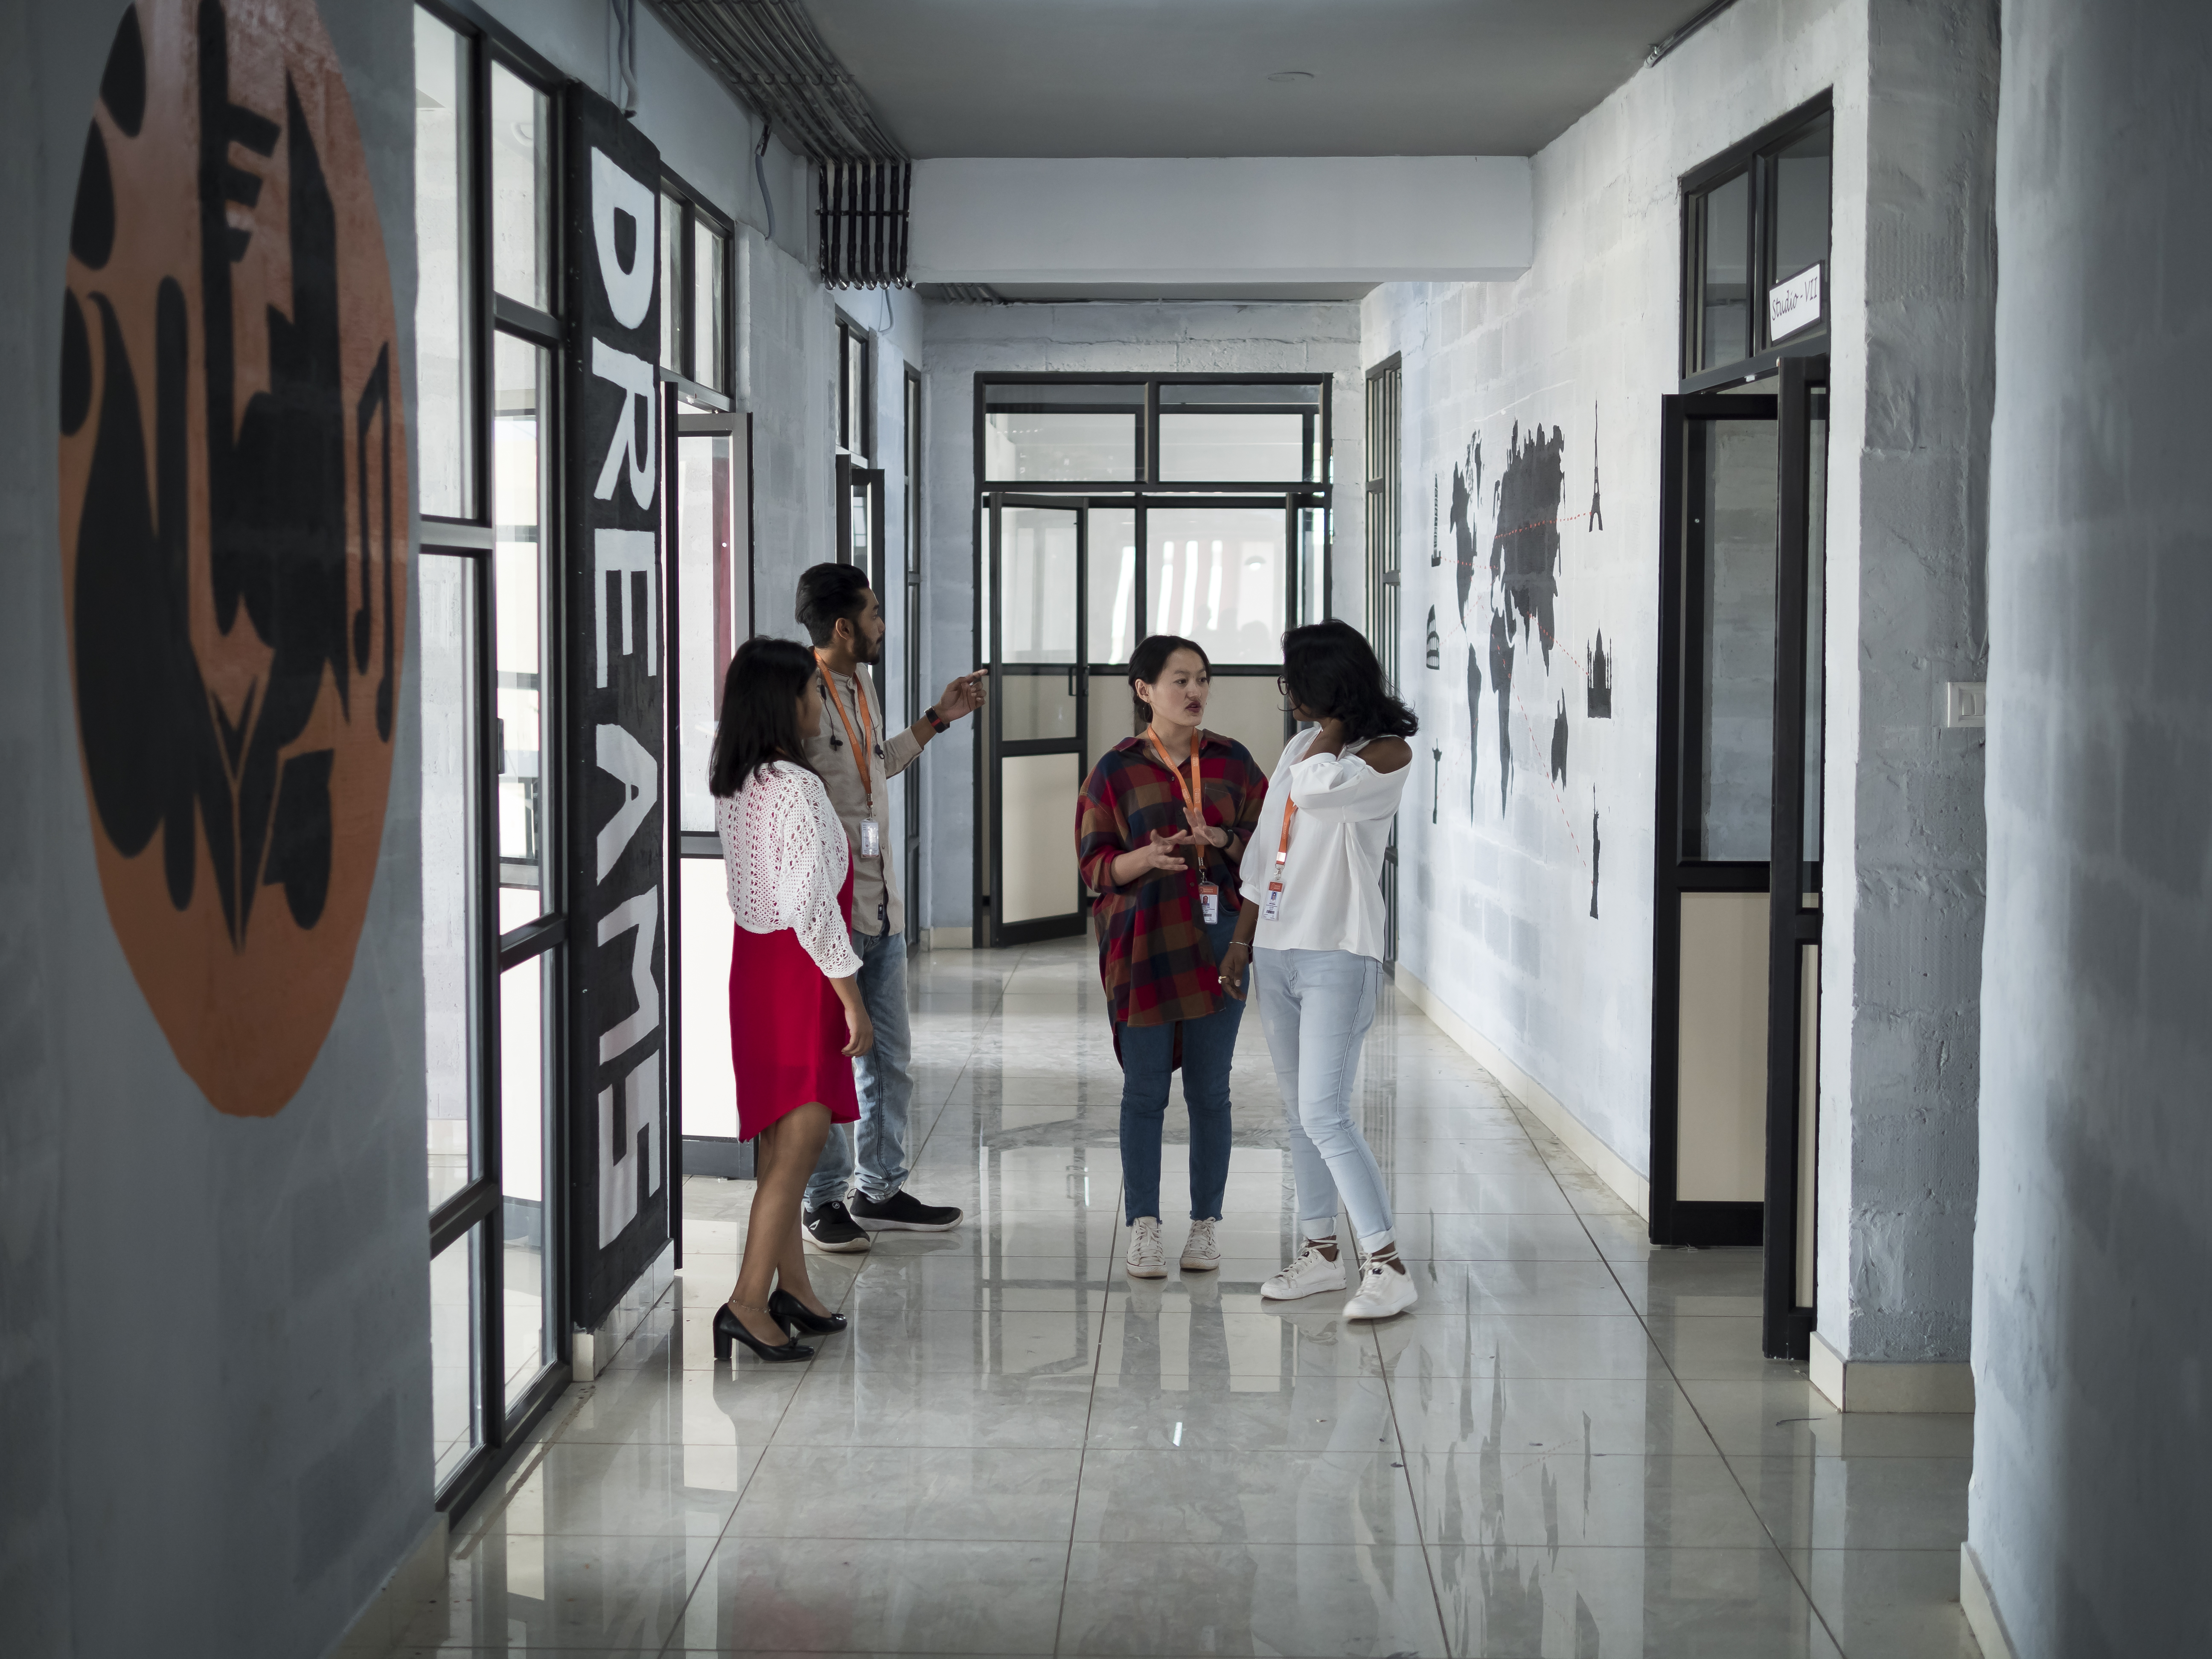 Bsd Bangalore School Of Design Courses Fees Placements Ranking Admission 2020